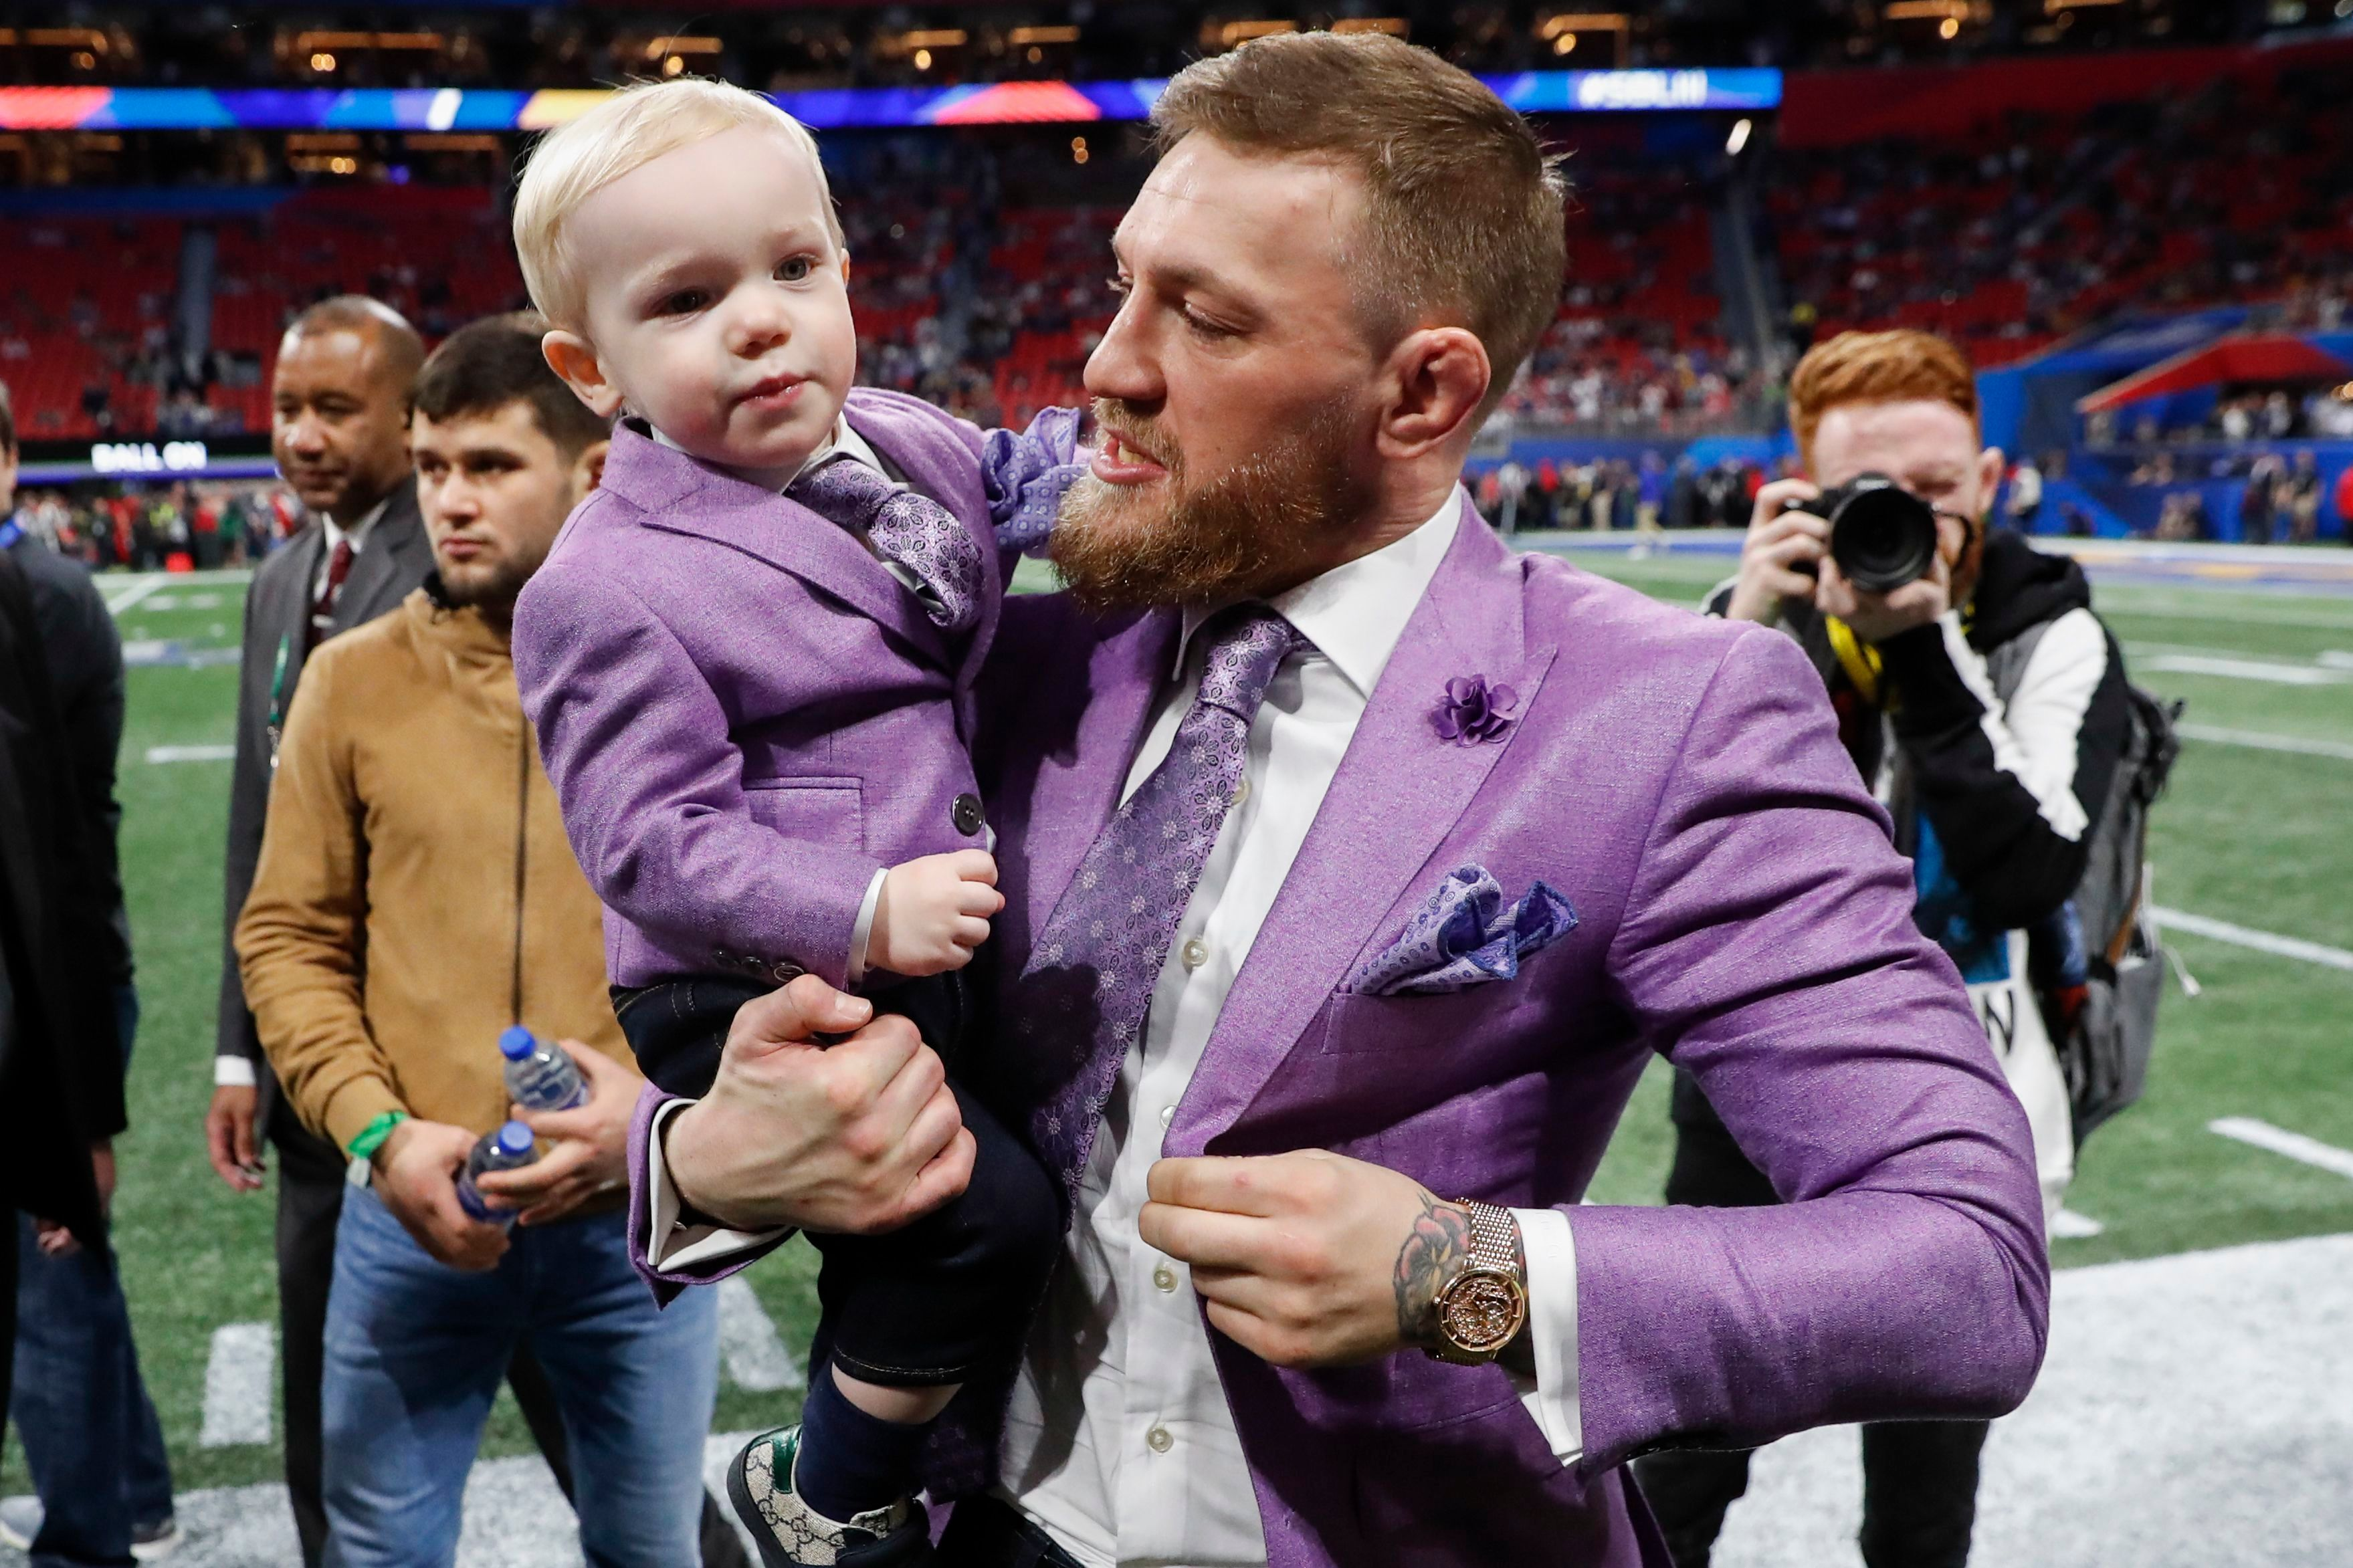 Conor Mcgregor Debuts New Suit At S Super Bowl For August Mcgregor Wwd